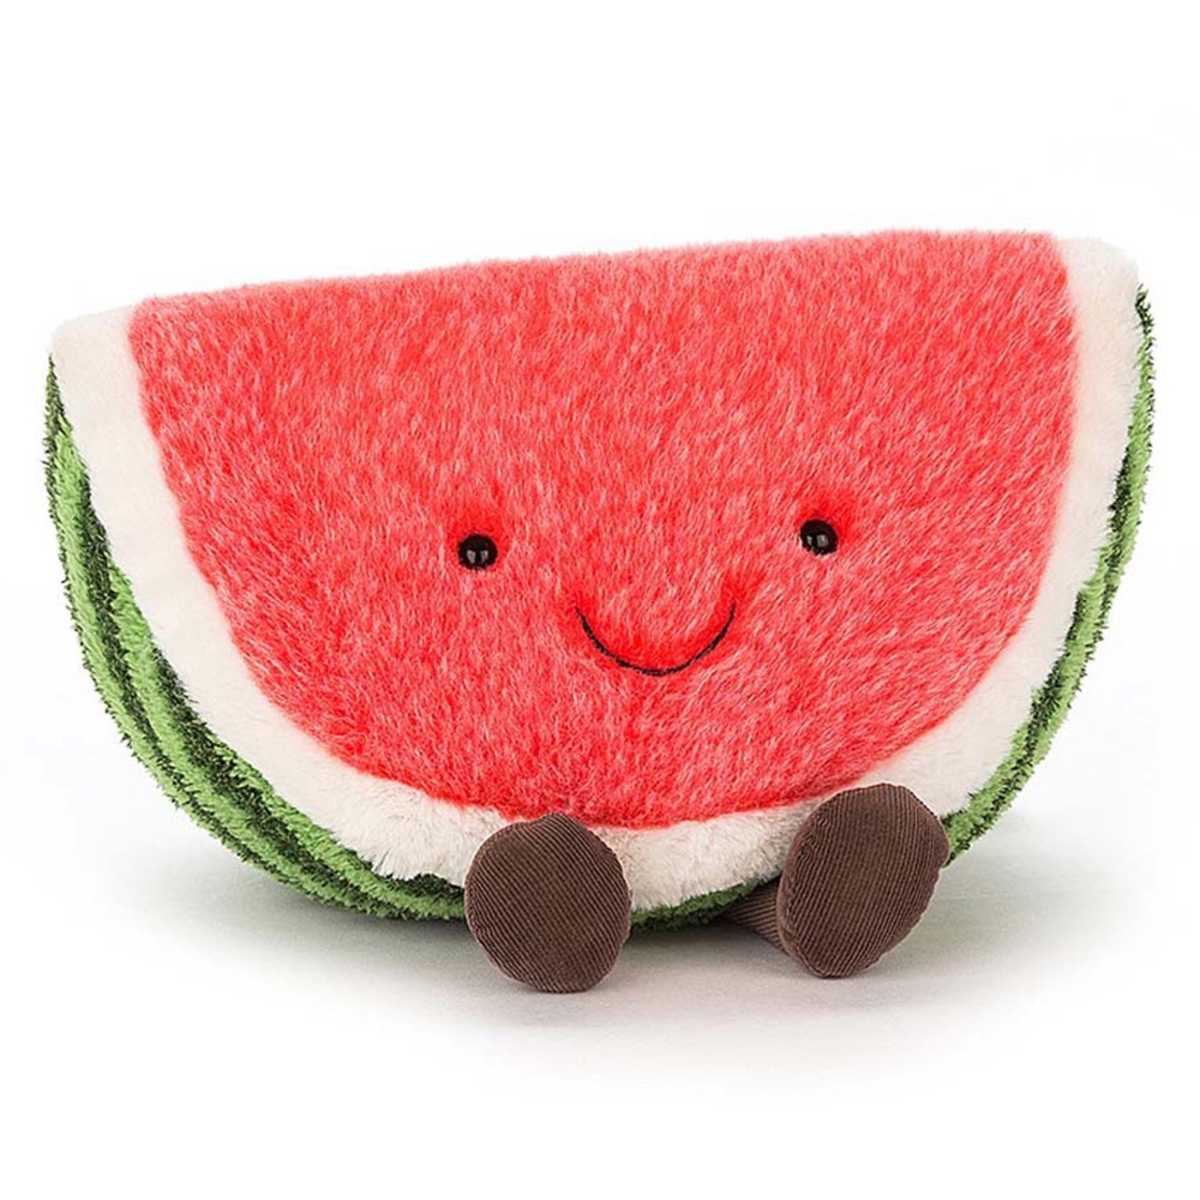 Peluche Amuseable Watermelon - Large Amuseable Watermelon - Large